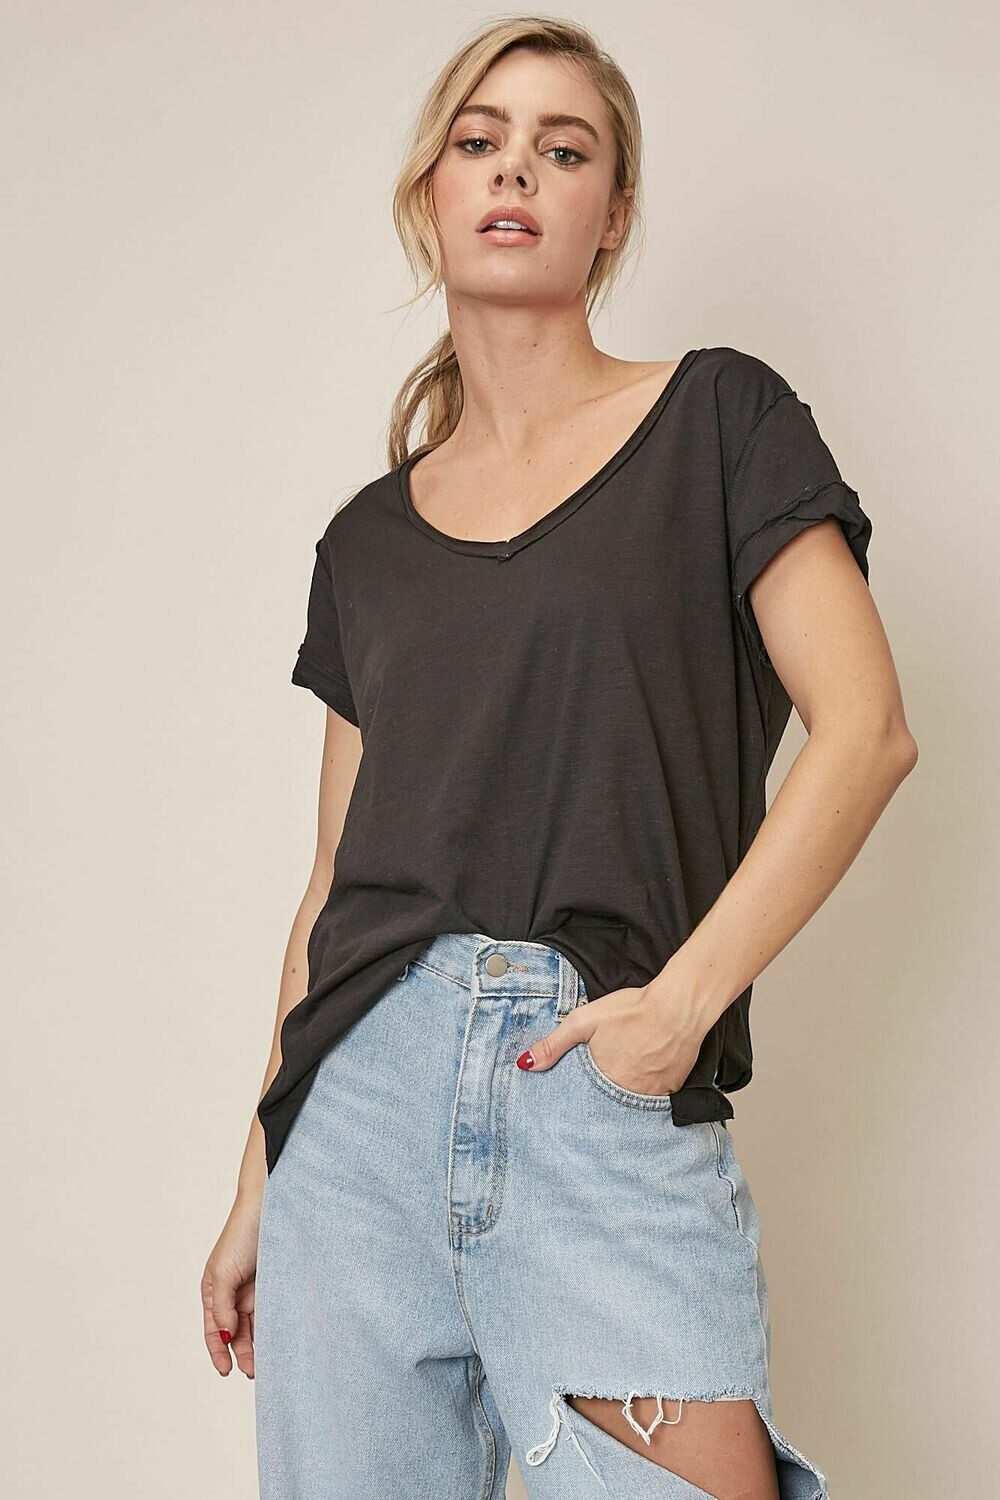 Over Size Tee